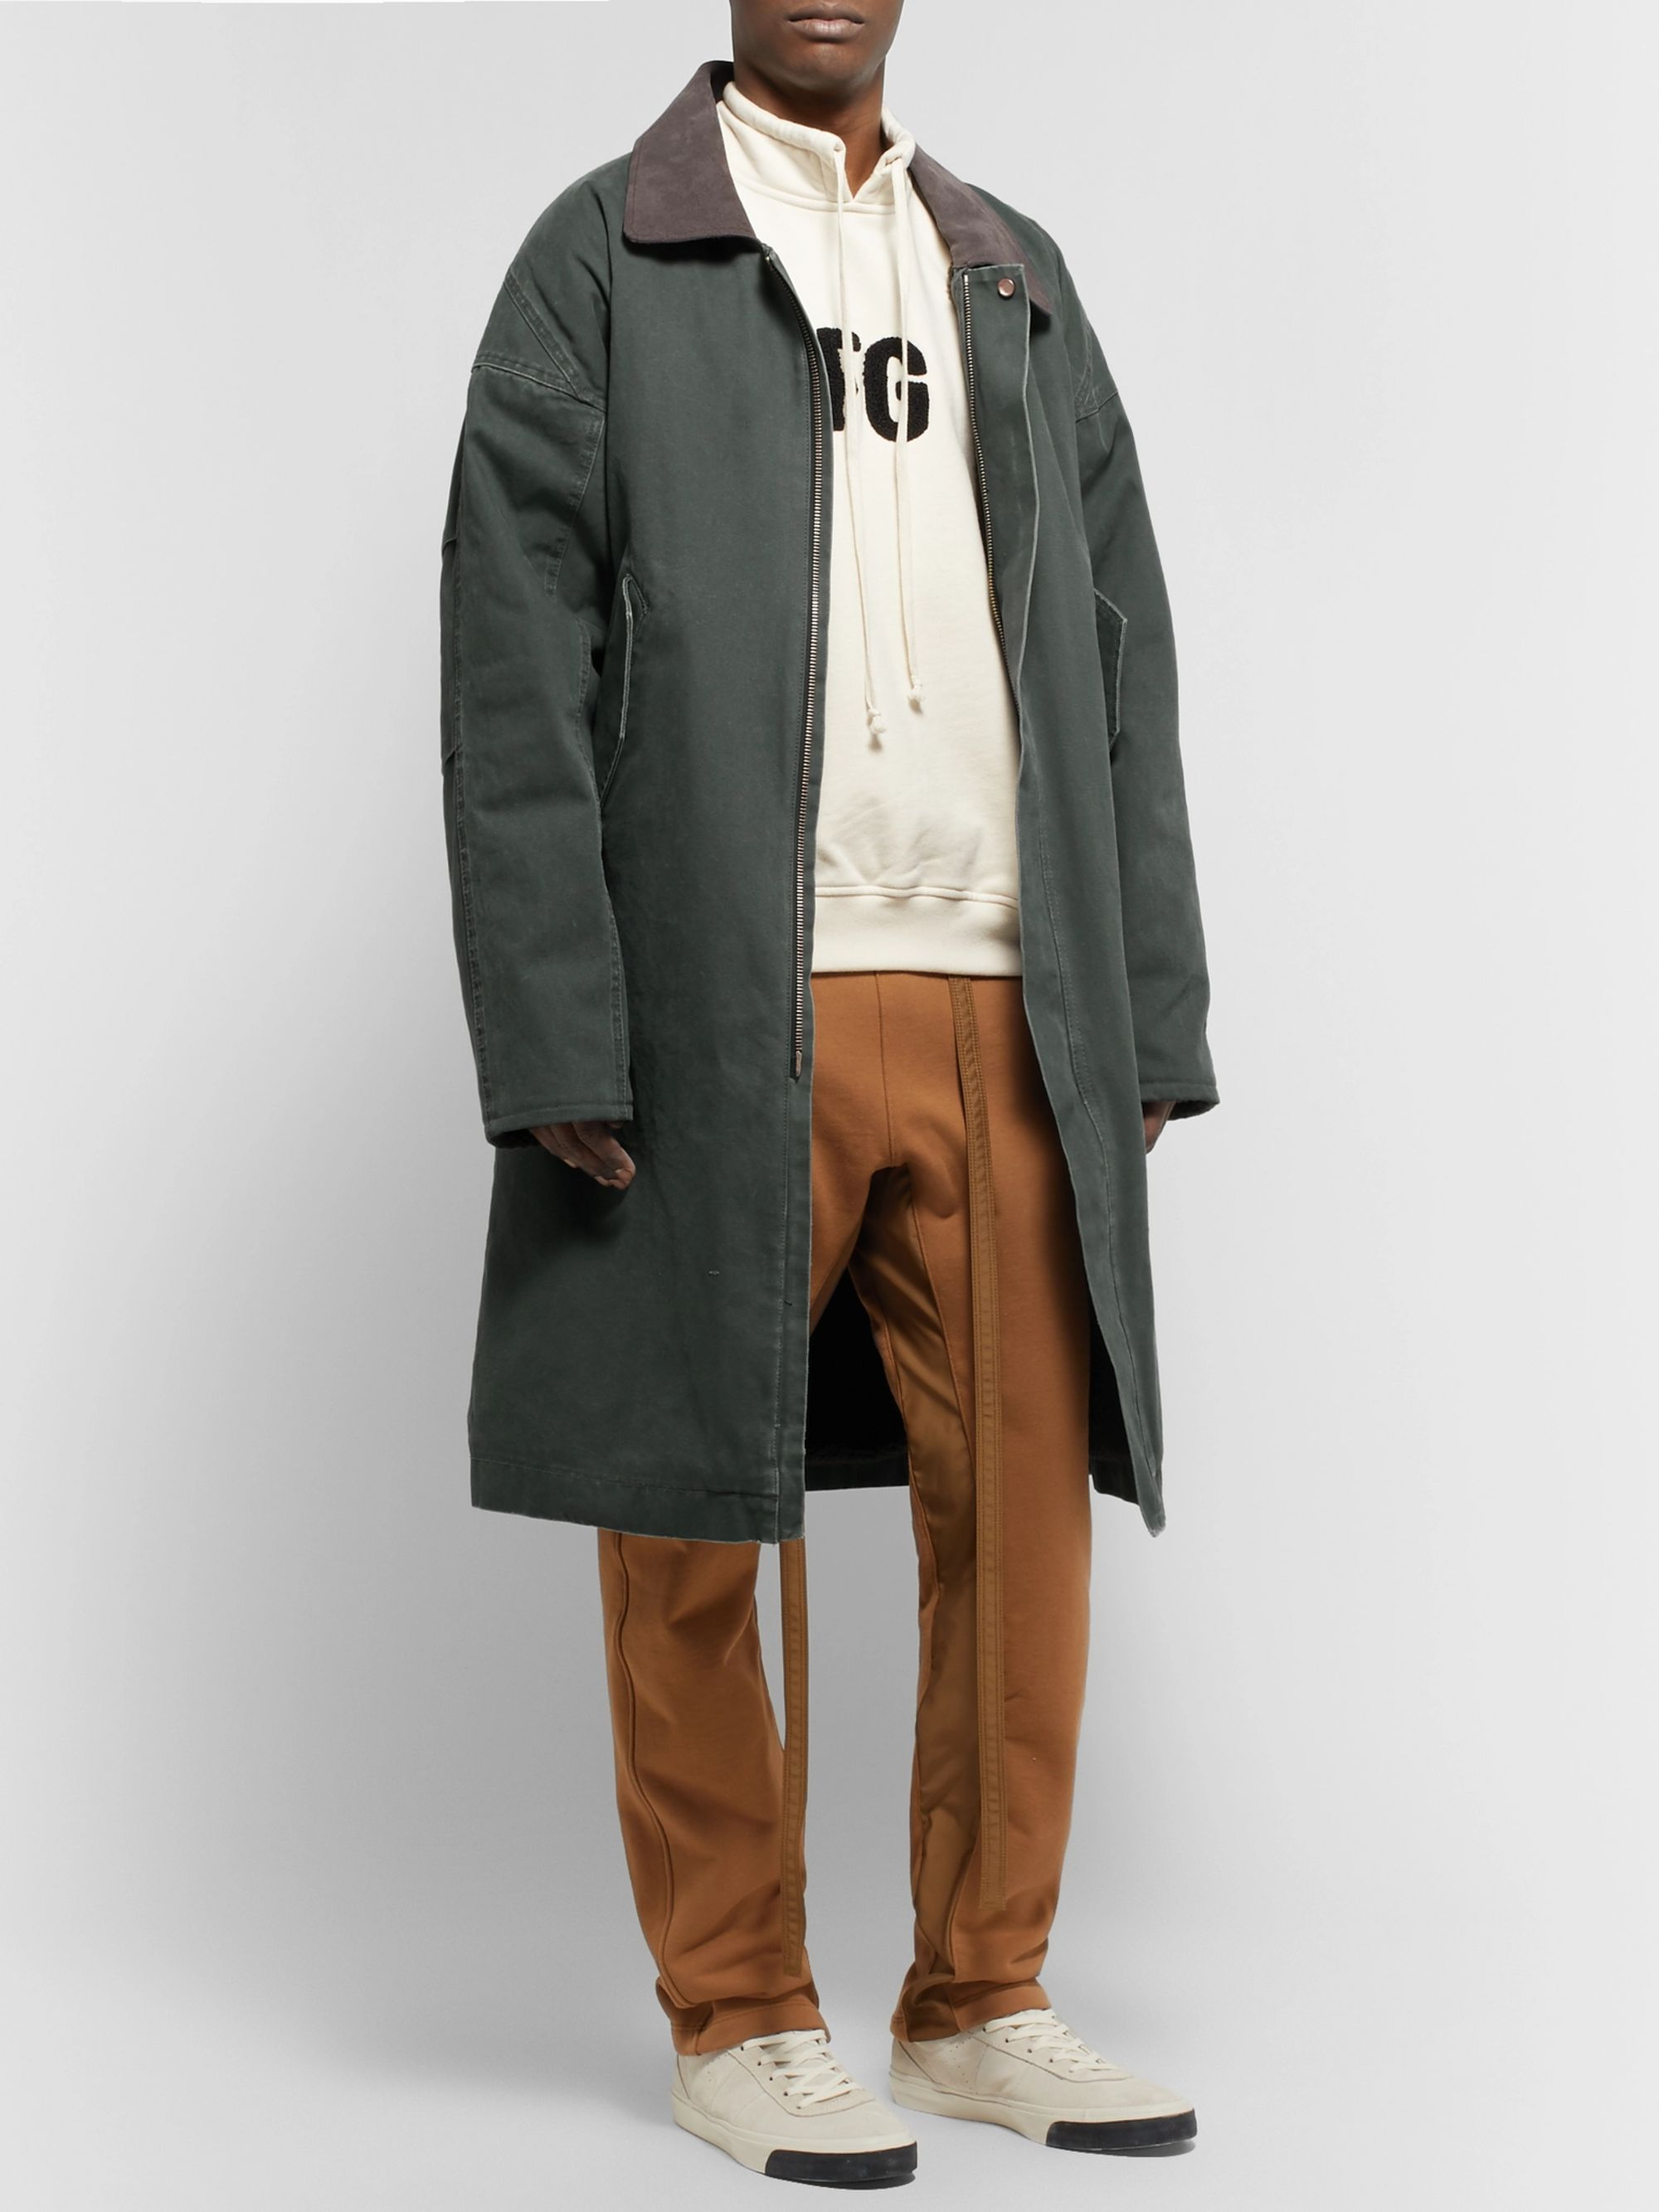 Fear of God Oversized Suede-Trimmed Faux Shearling-Lined Canvas Coat